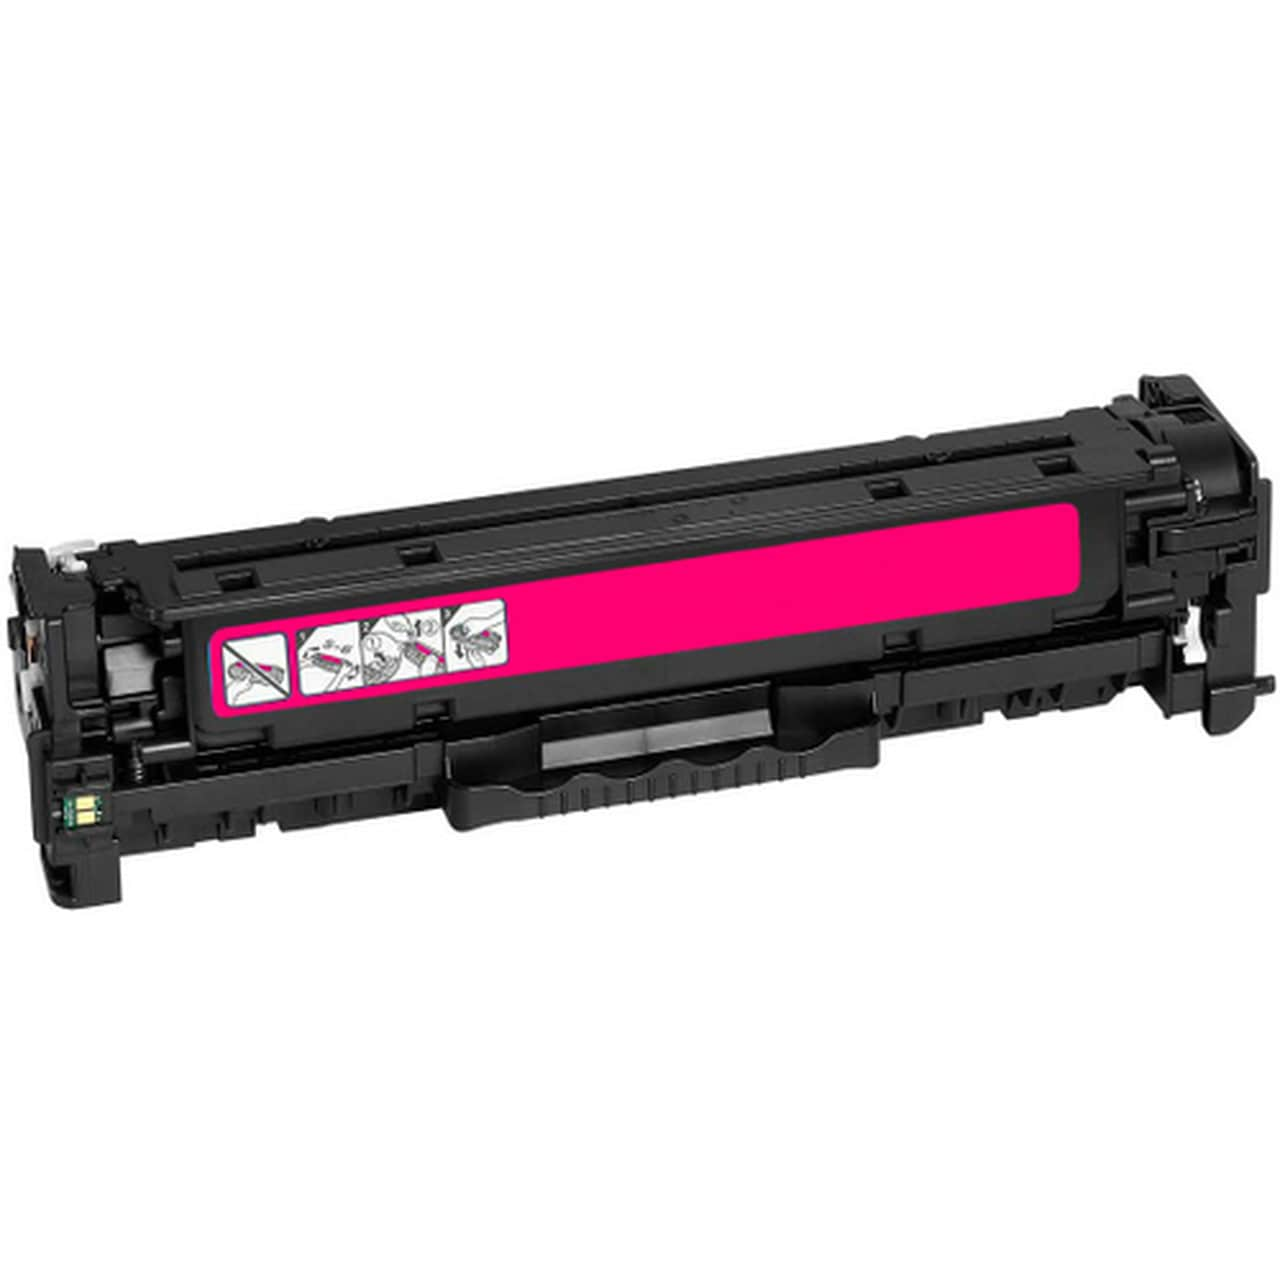 2660B001AA Toner Cartridge - Canon Remanufactured (Magenta)